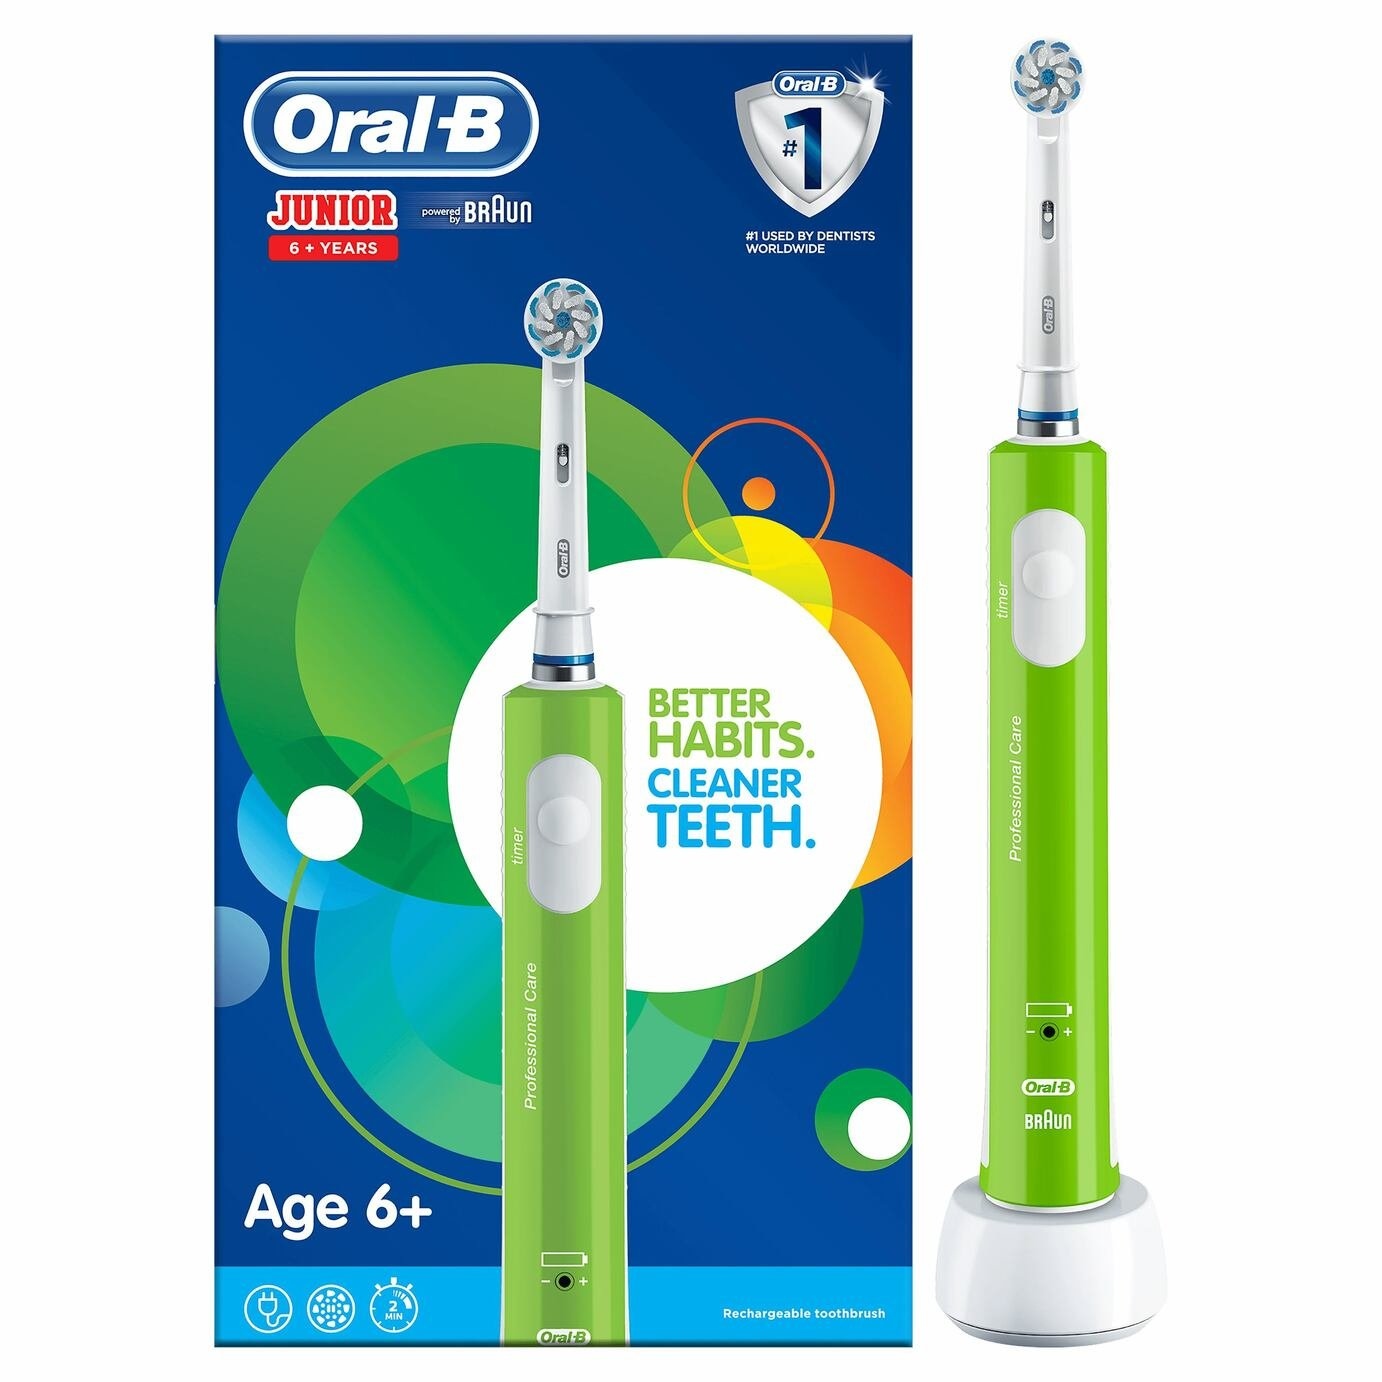 Oral-B Junior Kids Electric Toothbrush - Ages 6-12